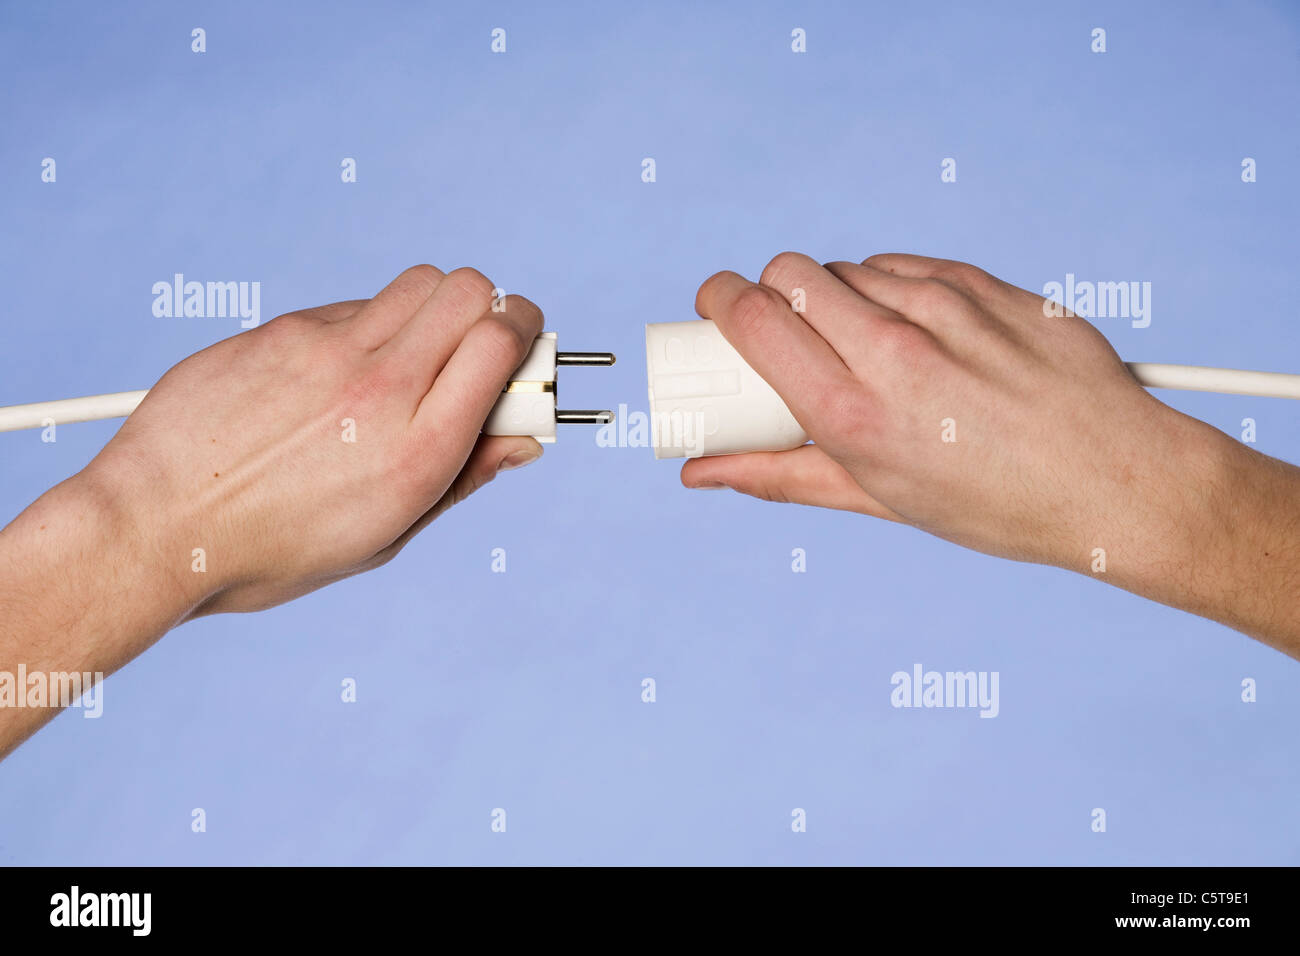 Person holding electrical cord and plug - Stock Image